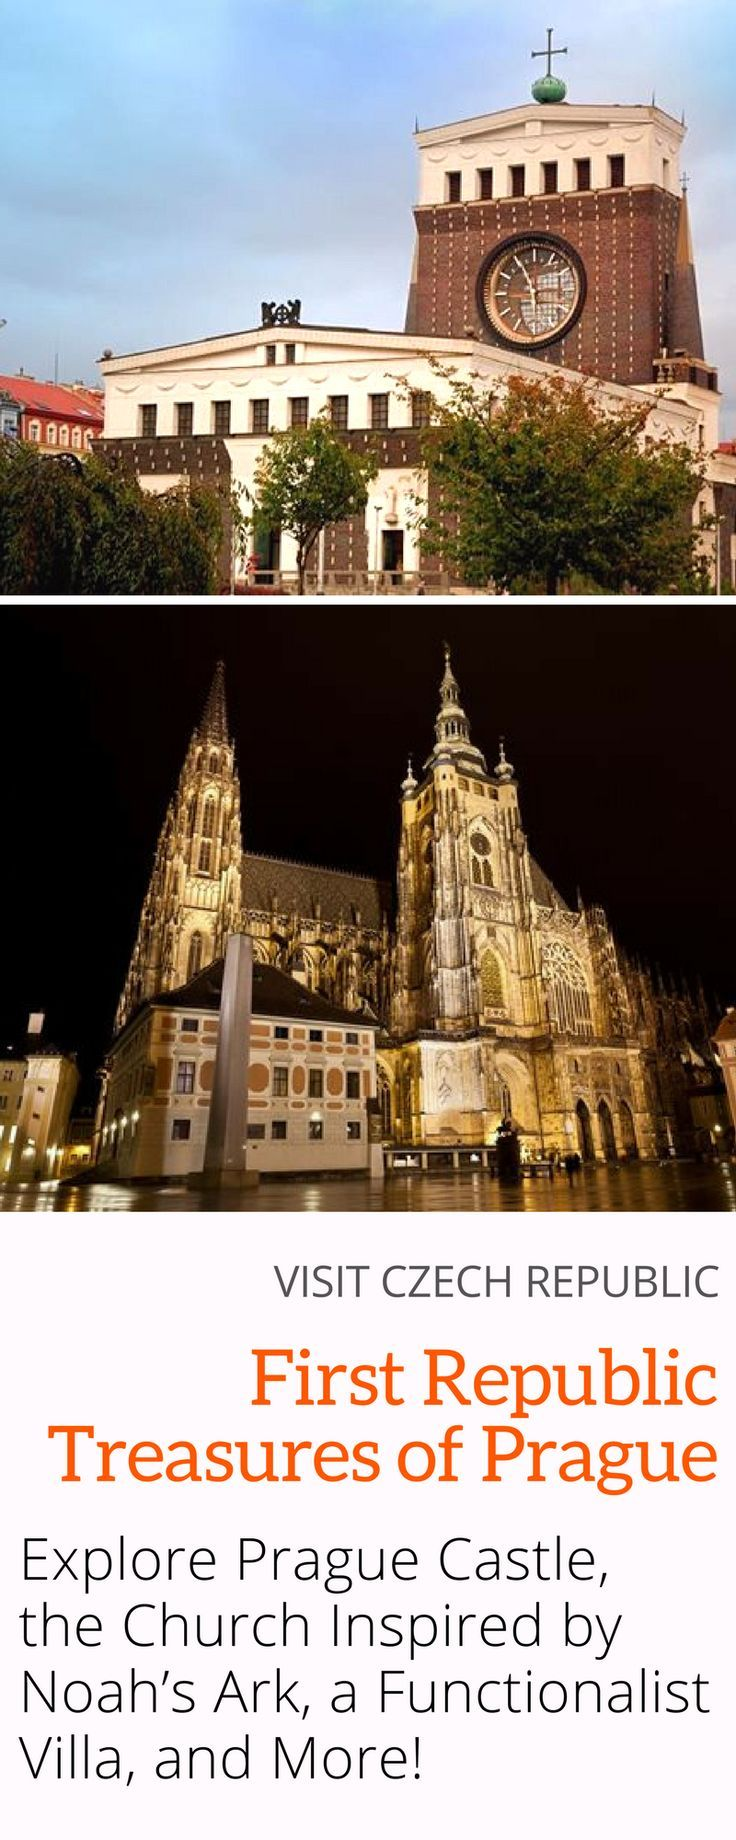 First Republic Treasures of Prague: Get to know Prague Castle, a luxurious functionalist villa, the catholic church inspired by Noah�s Ark with the largest clock tower in the Czech Republic, and more! Click here to explore Prague�s treasures from the earl